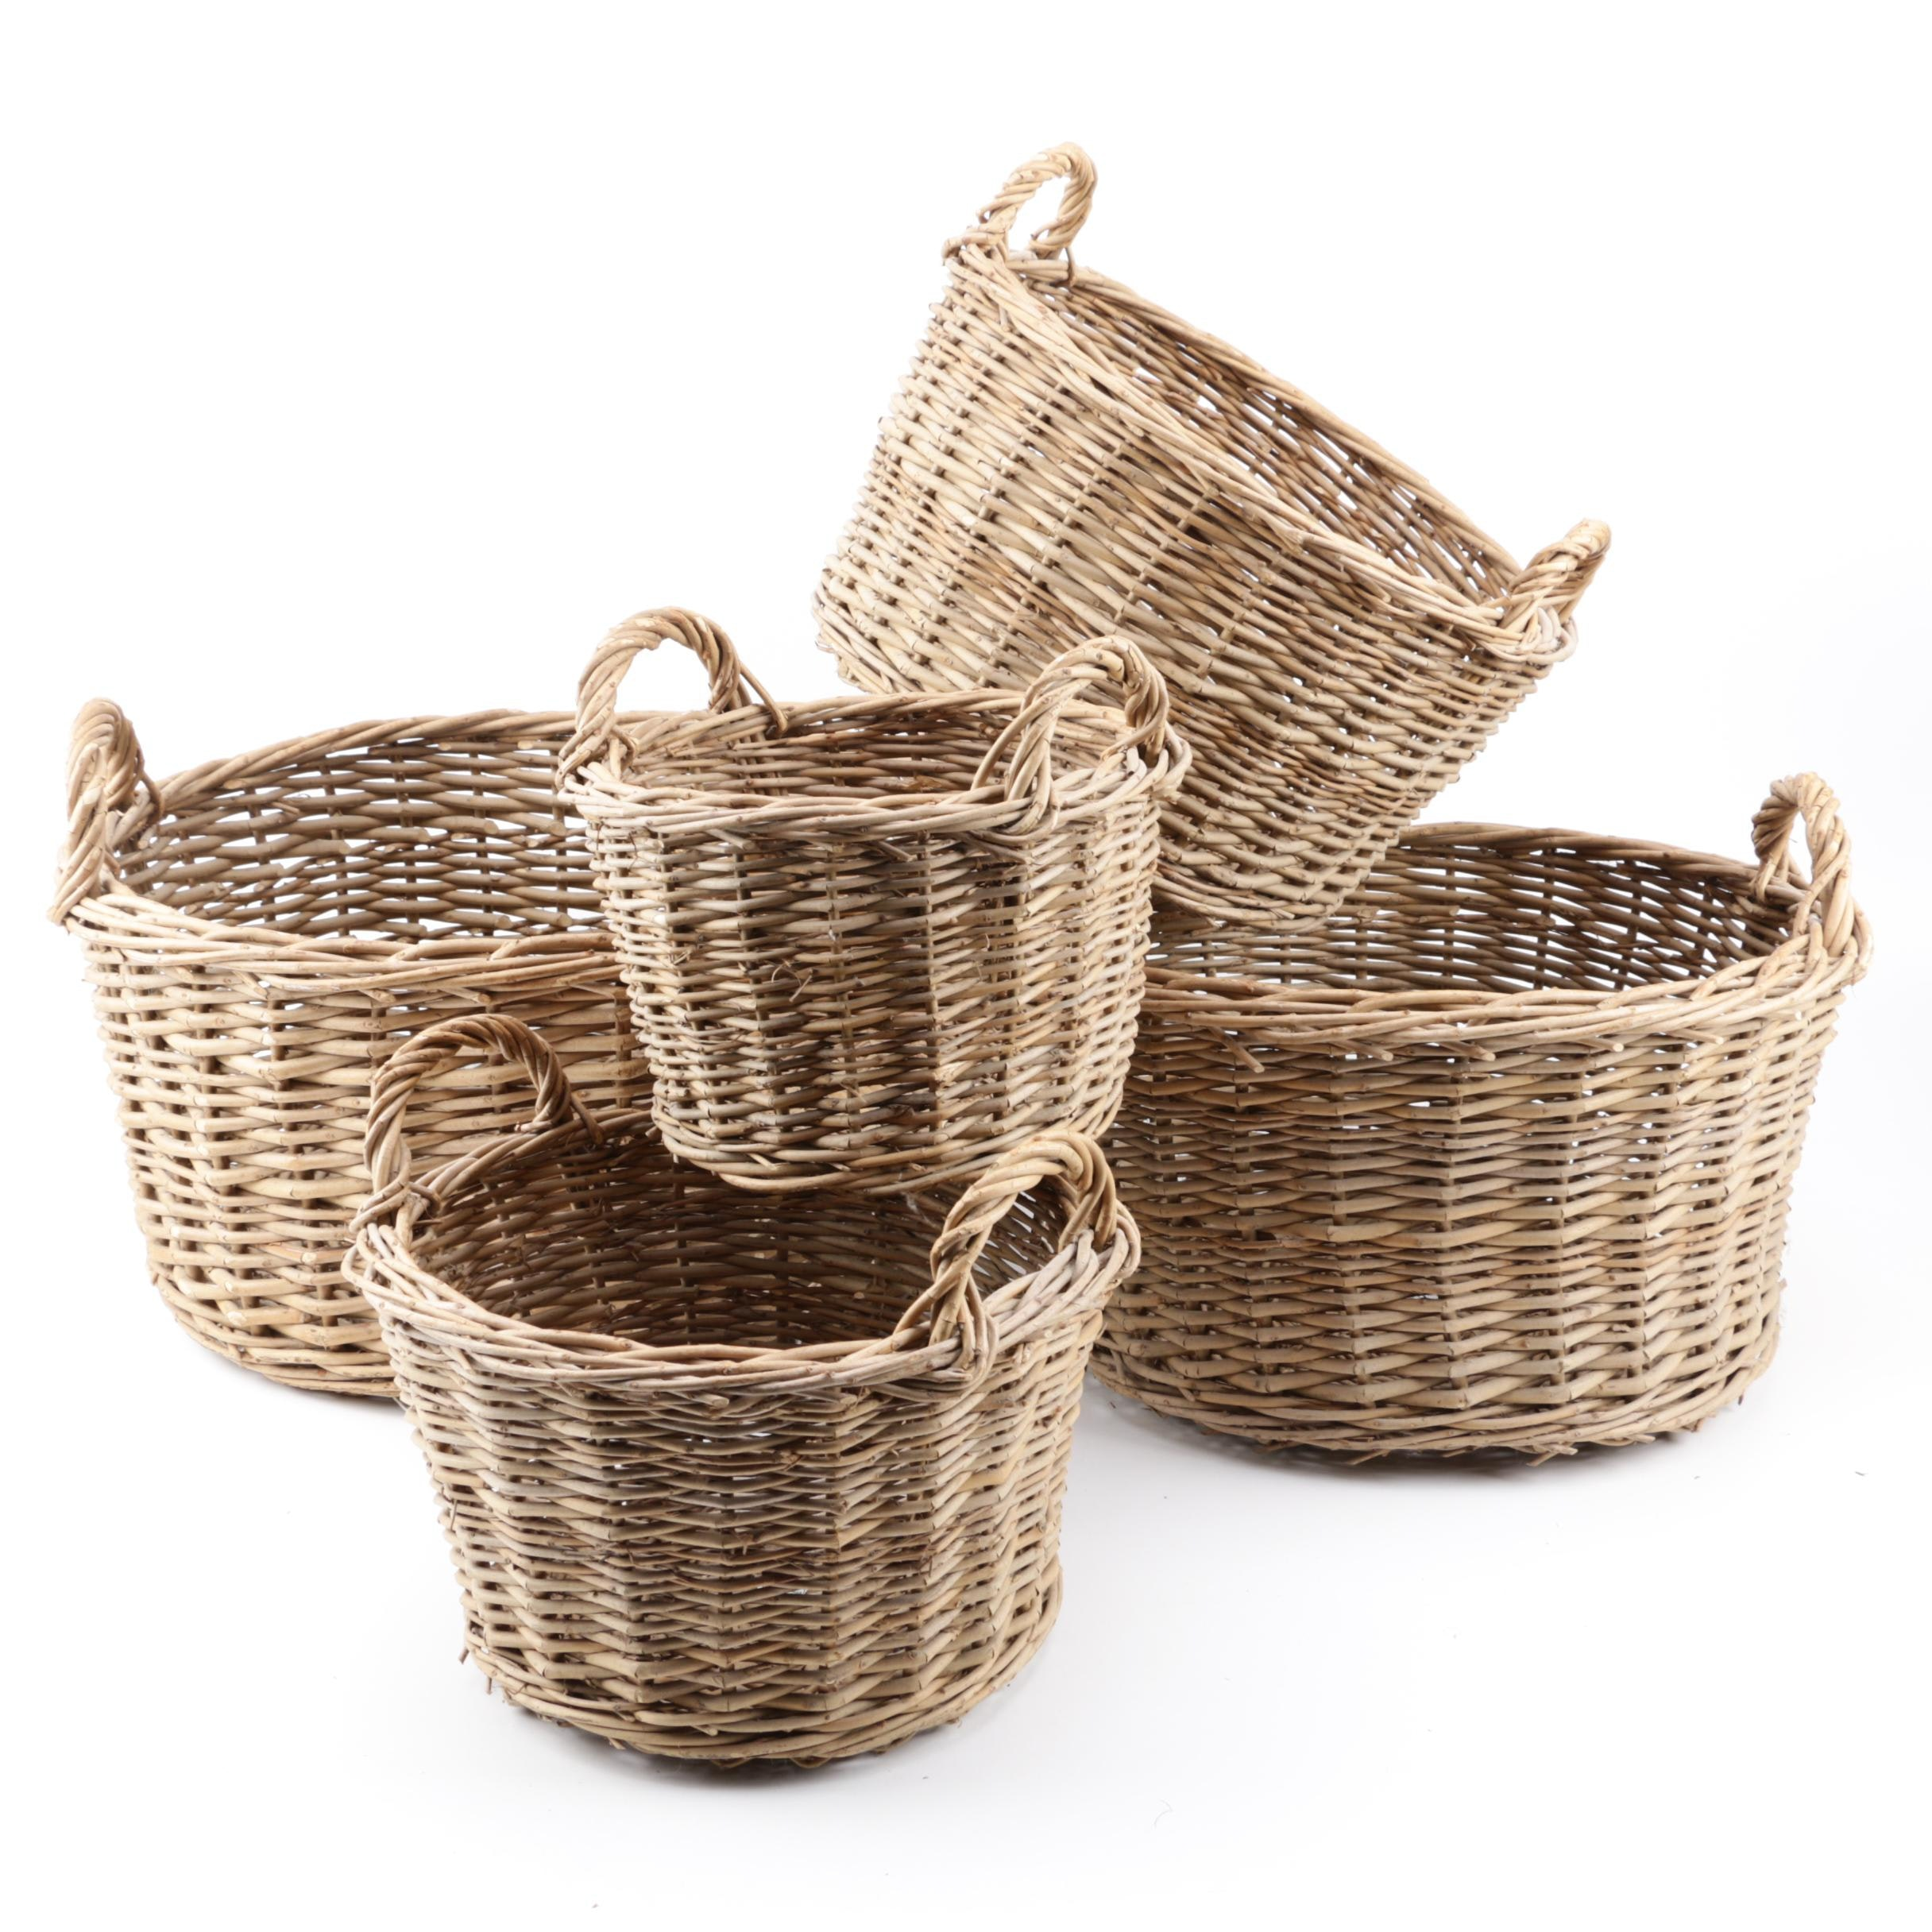 Wicker Woven Nesting Baskets with Handles